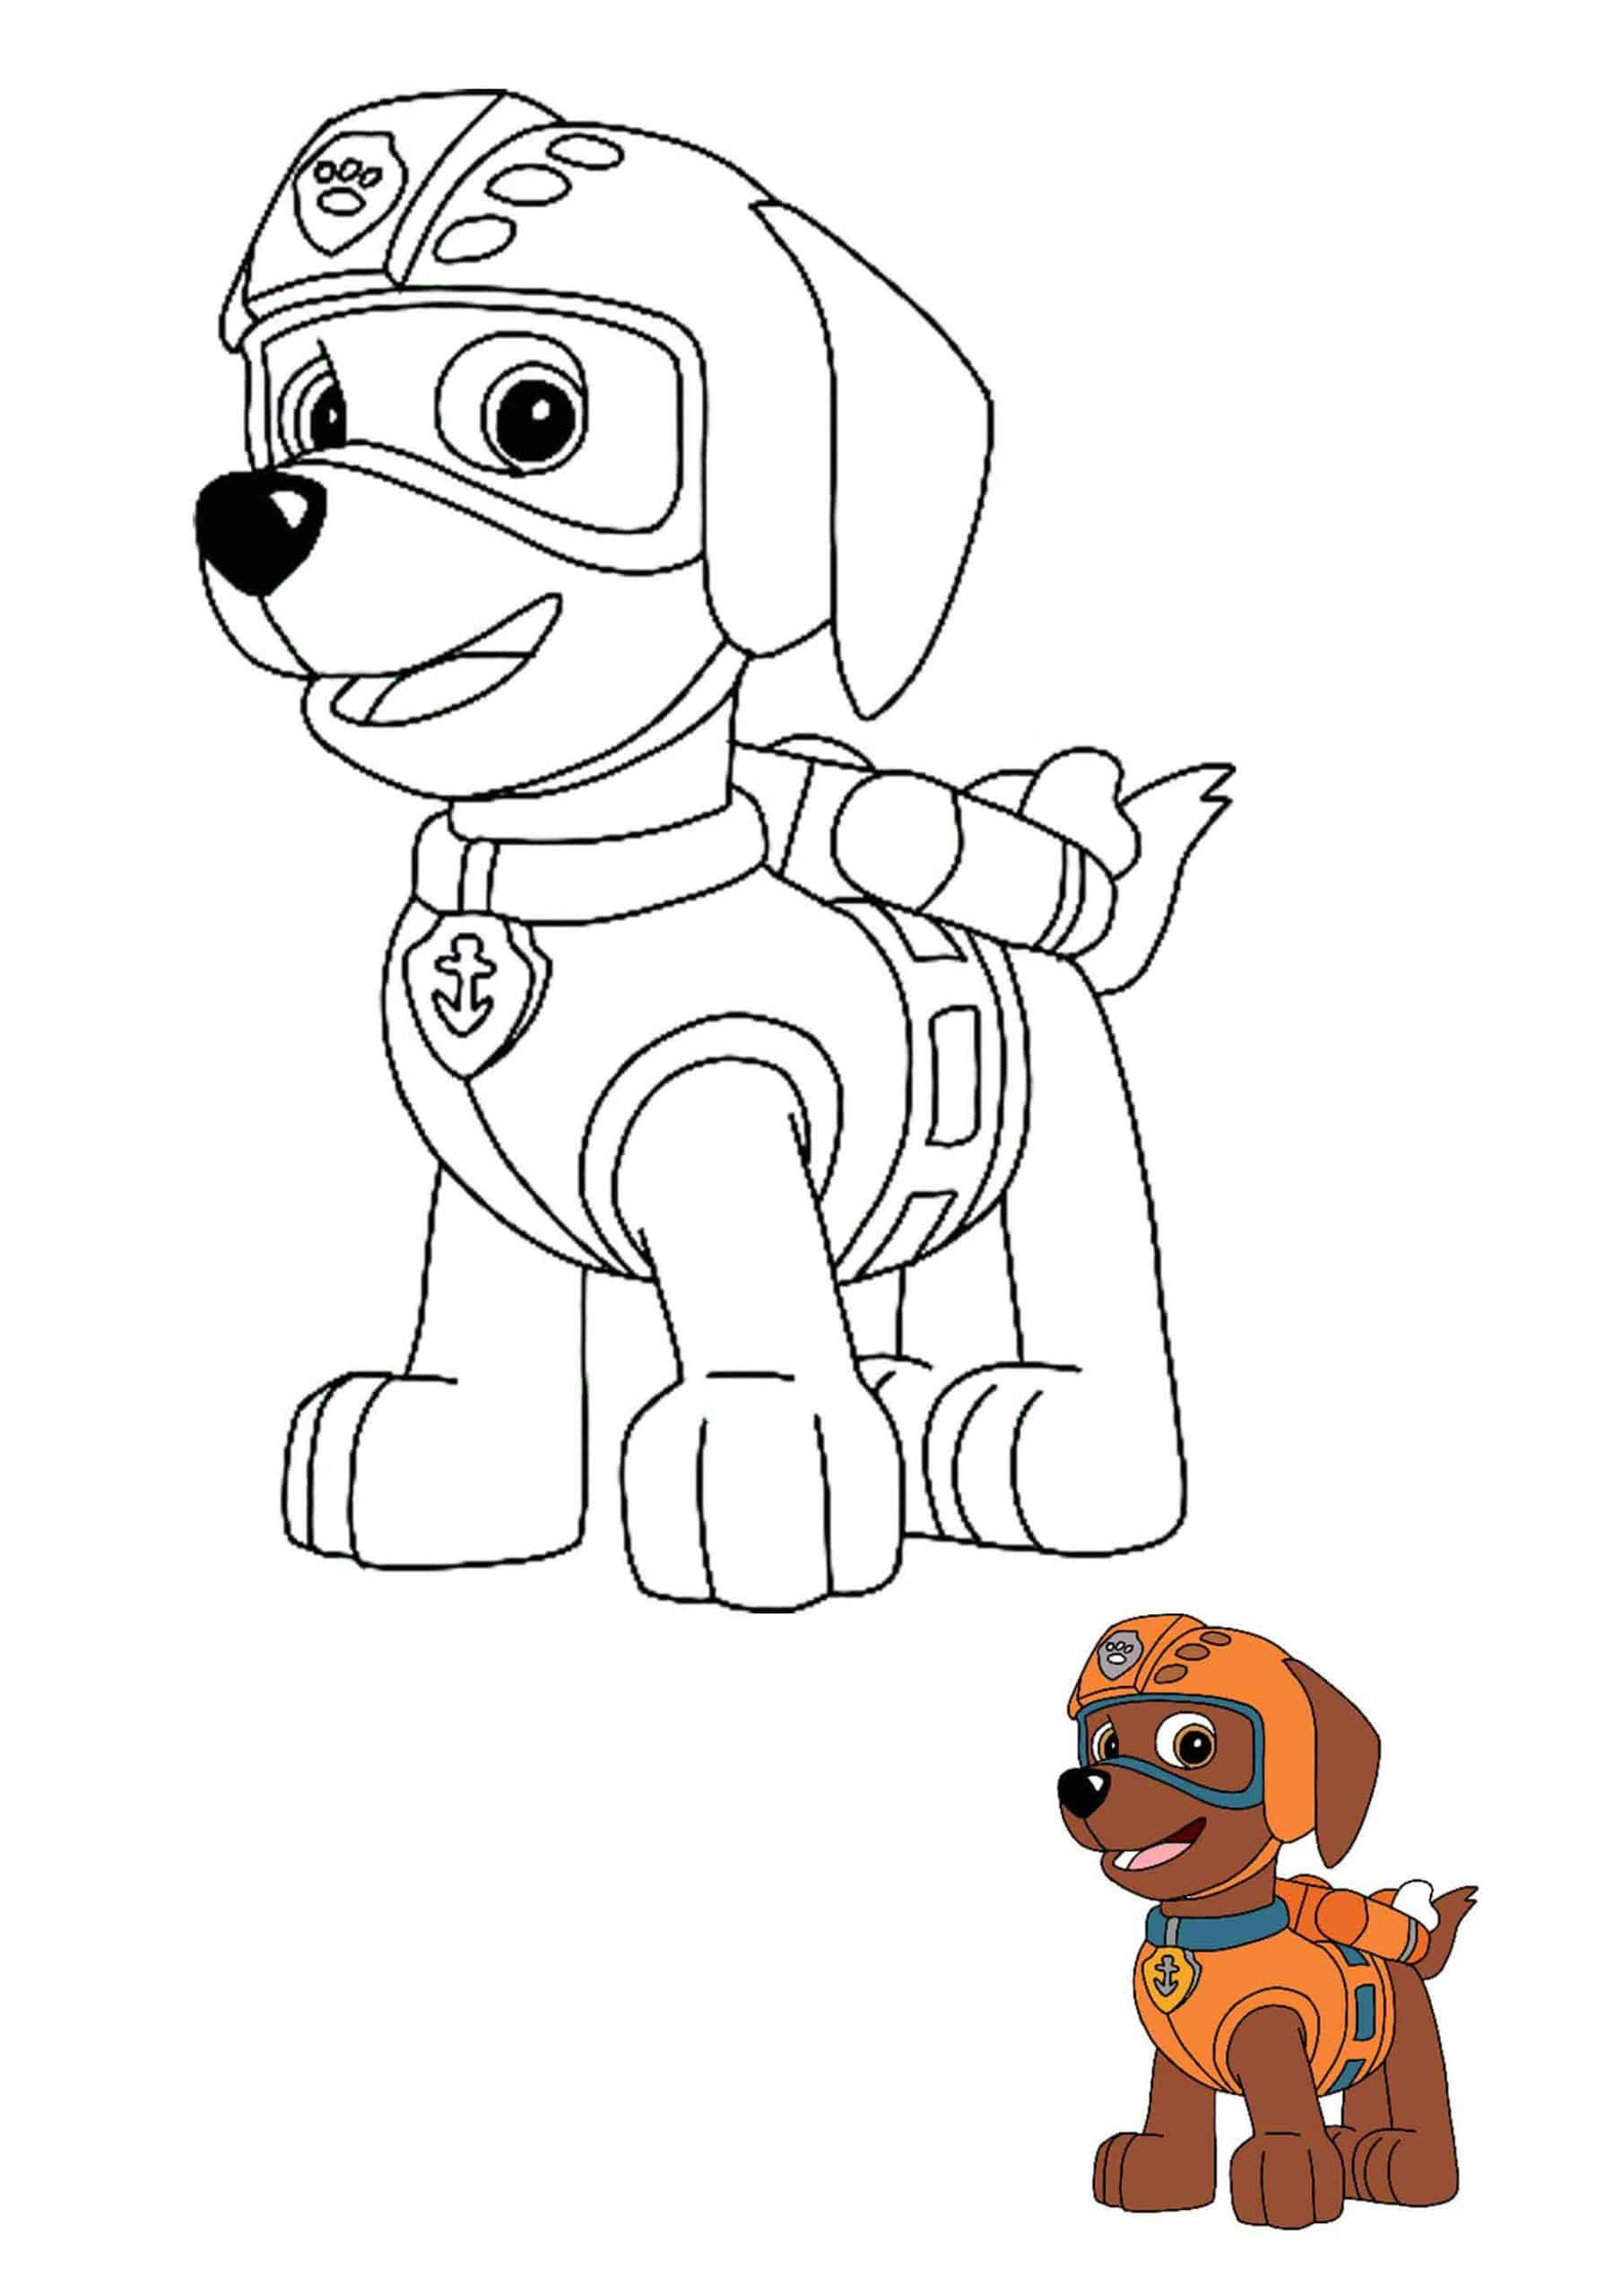 Paw Patrol Zuma coloring page with sample